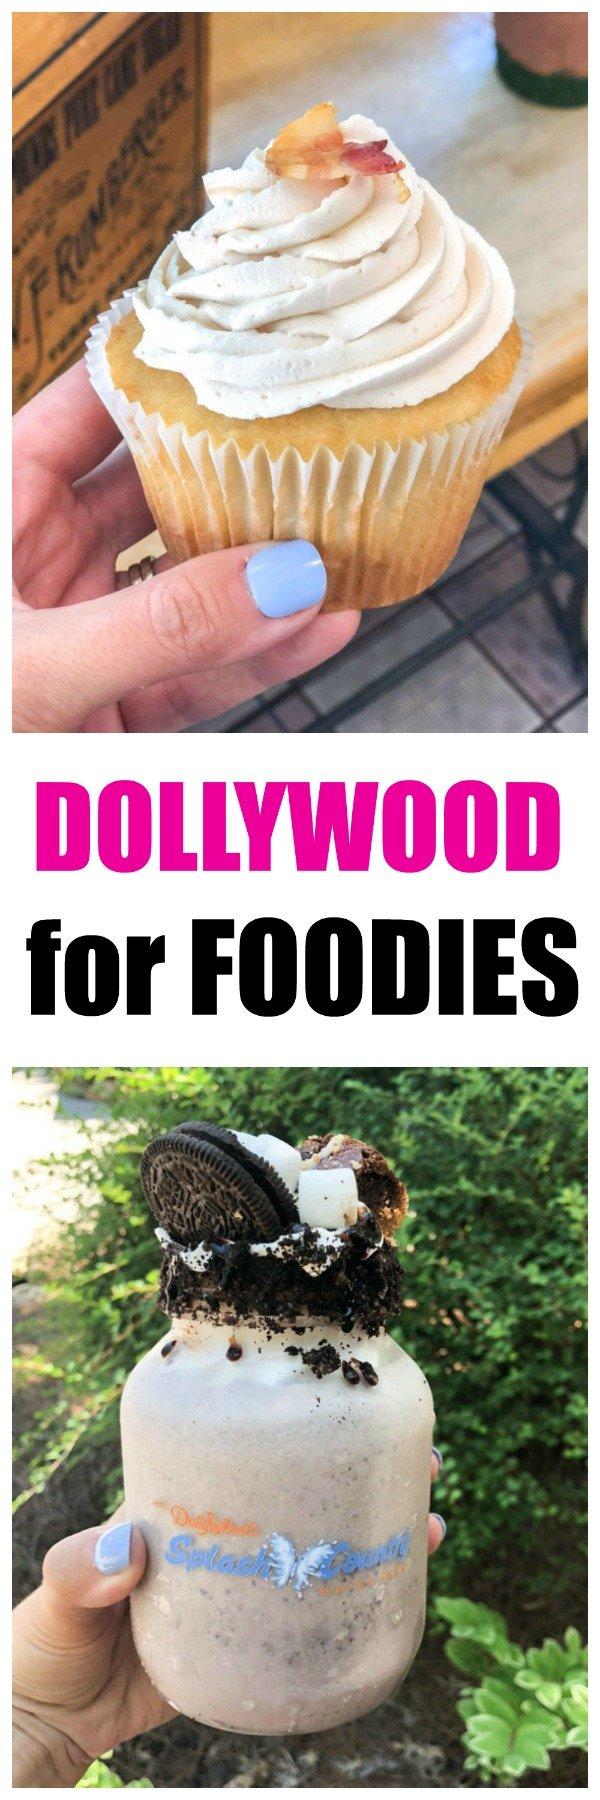 Dollywood amusement park is not only known for it's exciting rides, first class entertainment and water park but also it's award winning food. A wonderful place for foodies and families! #dollywood #familyvacation #travel #familytravel